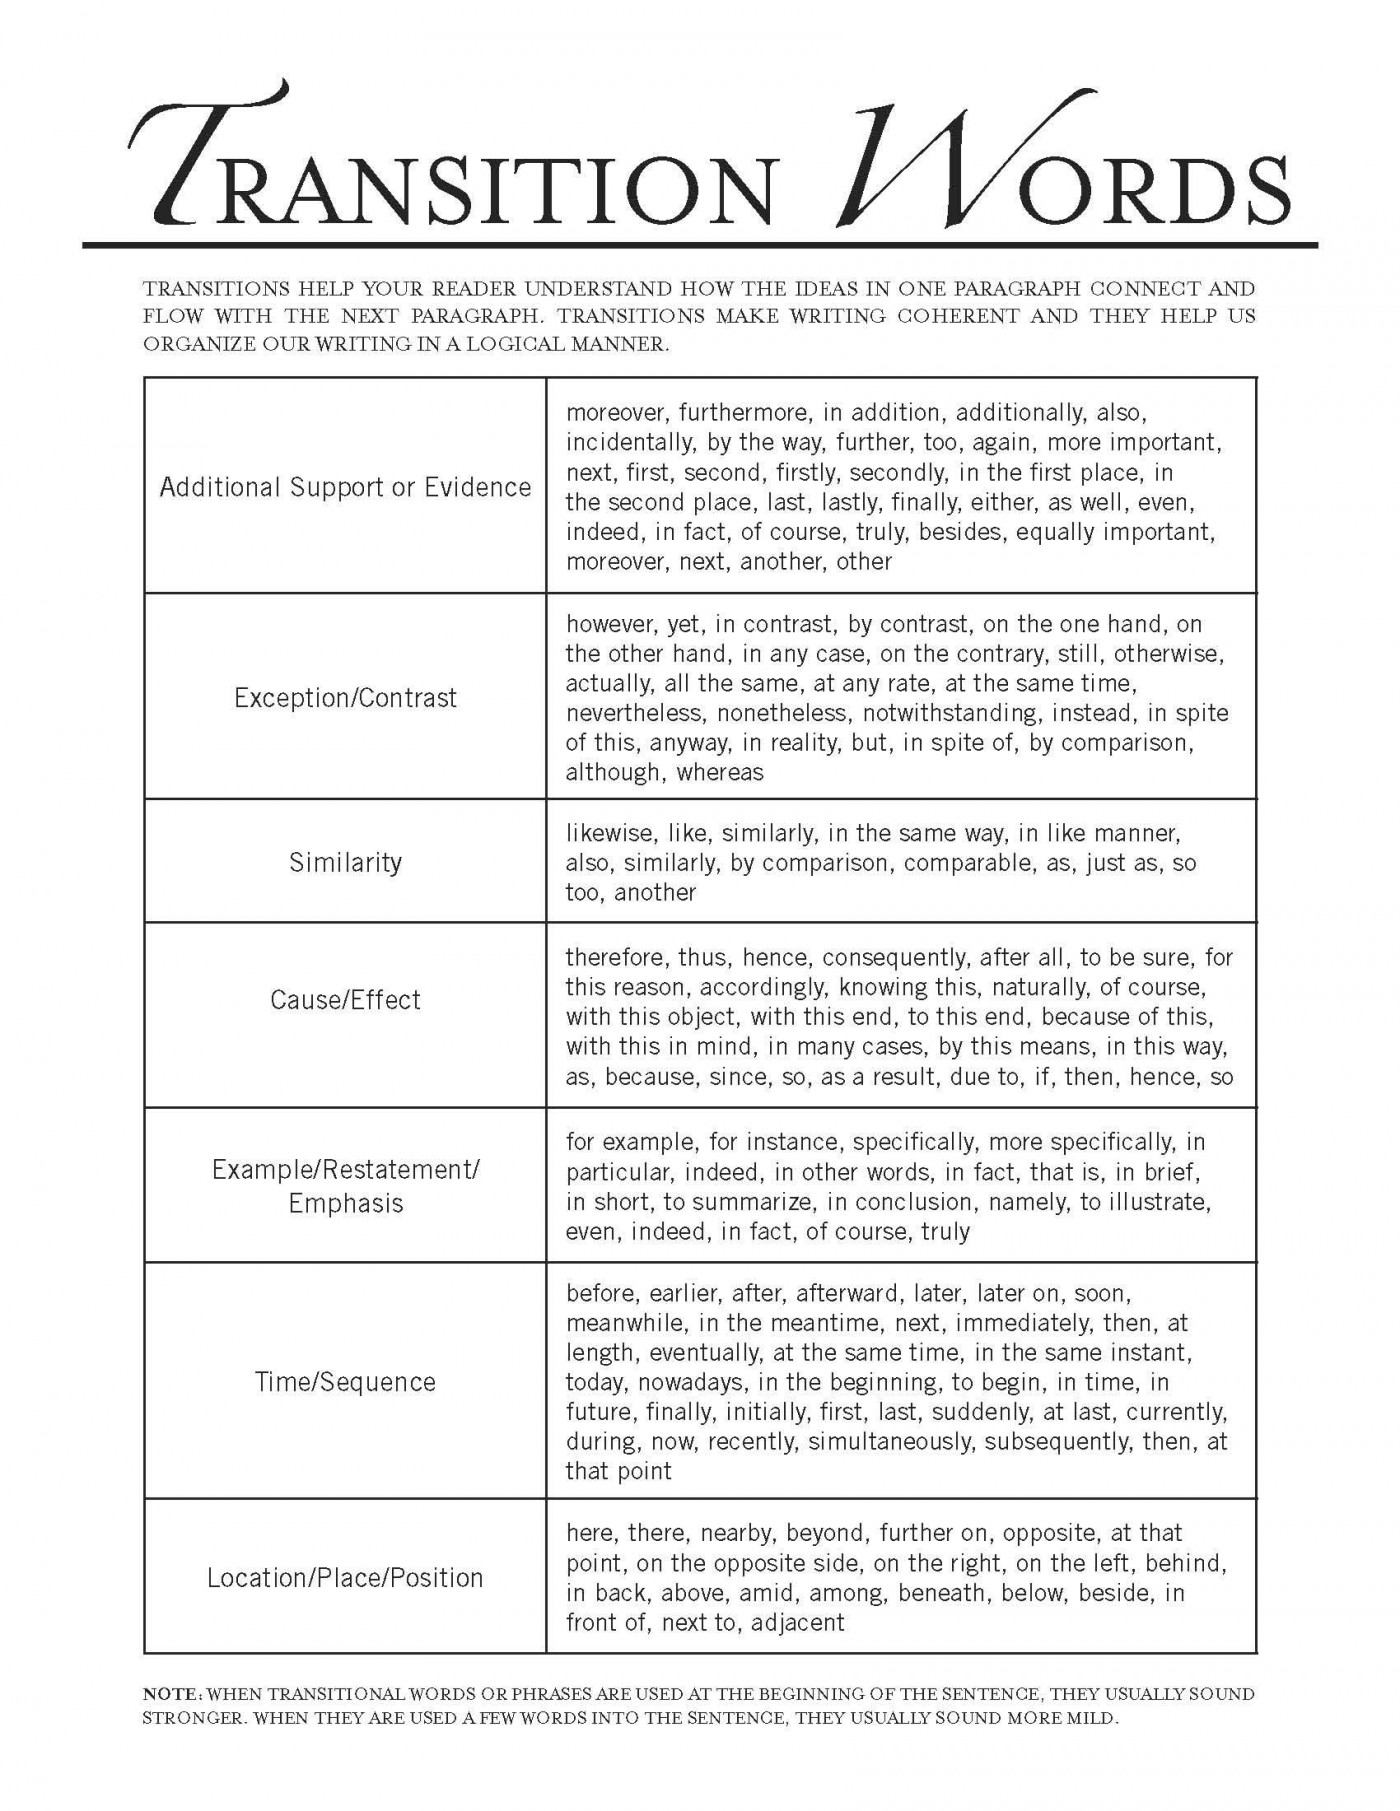 002 Essay Example Transition Words For Essays Rare Paragraph Pdf In Spanish 4th Grade 1400